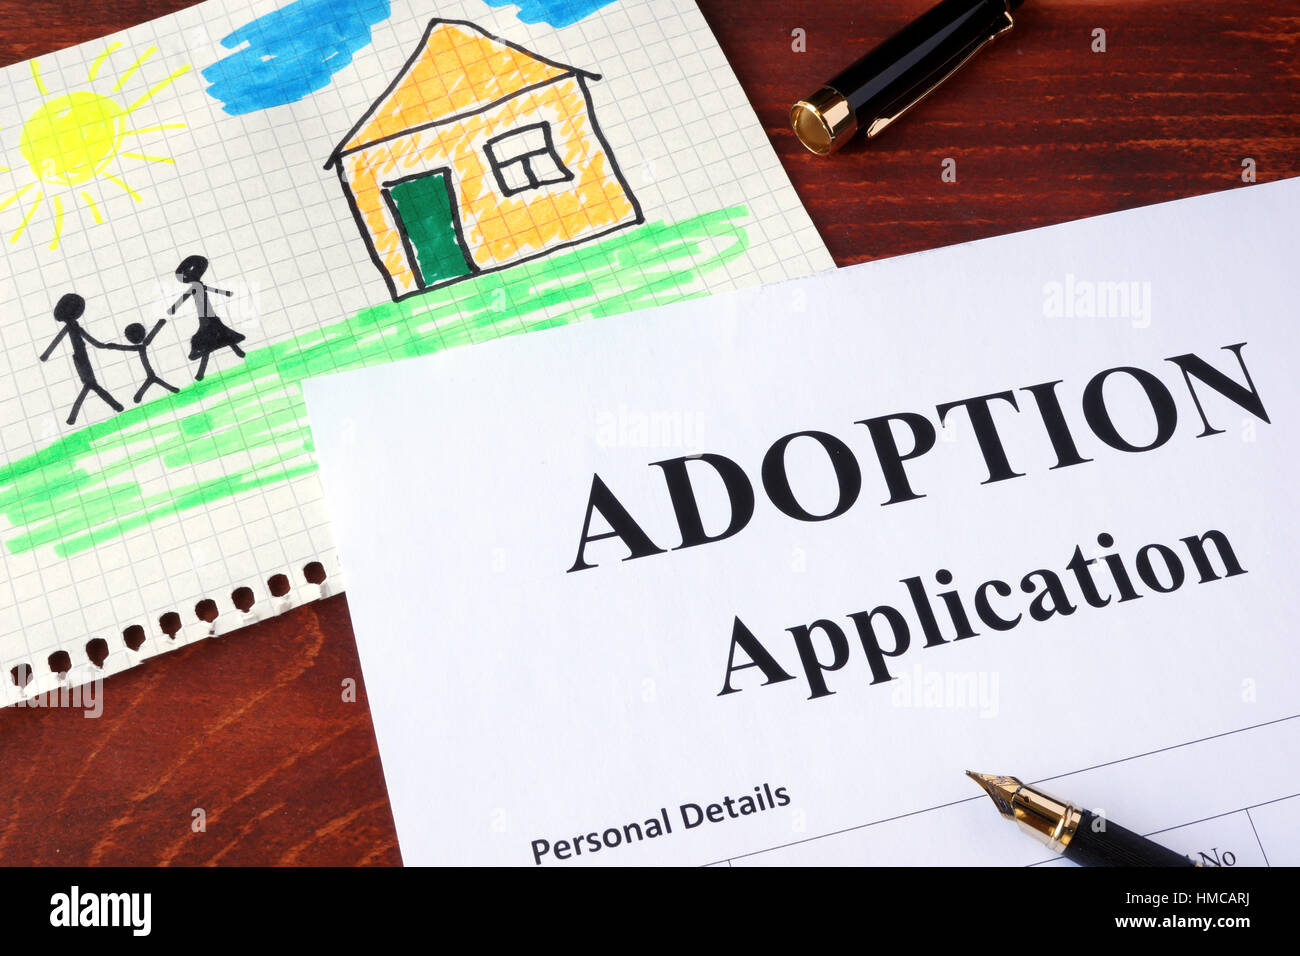 Adoption form and children's picture. - Stock Image